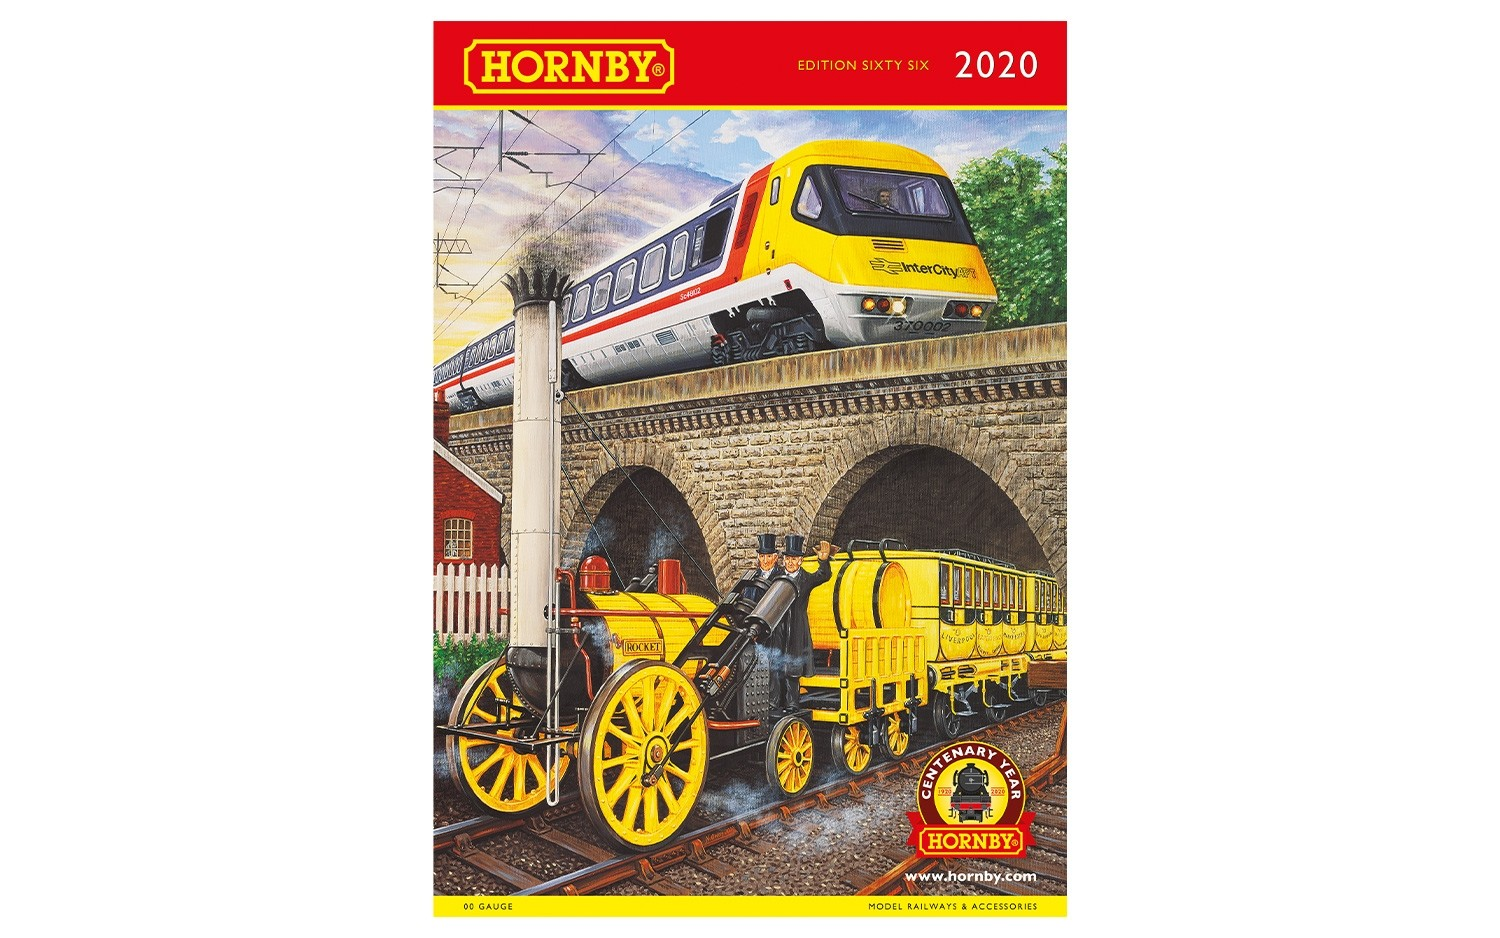 Hornby Catalogue 2020